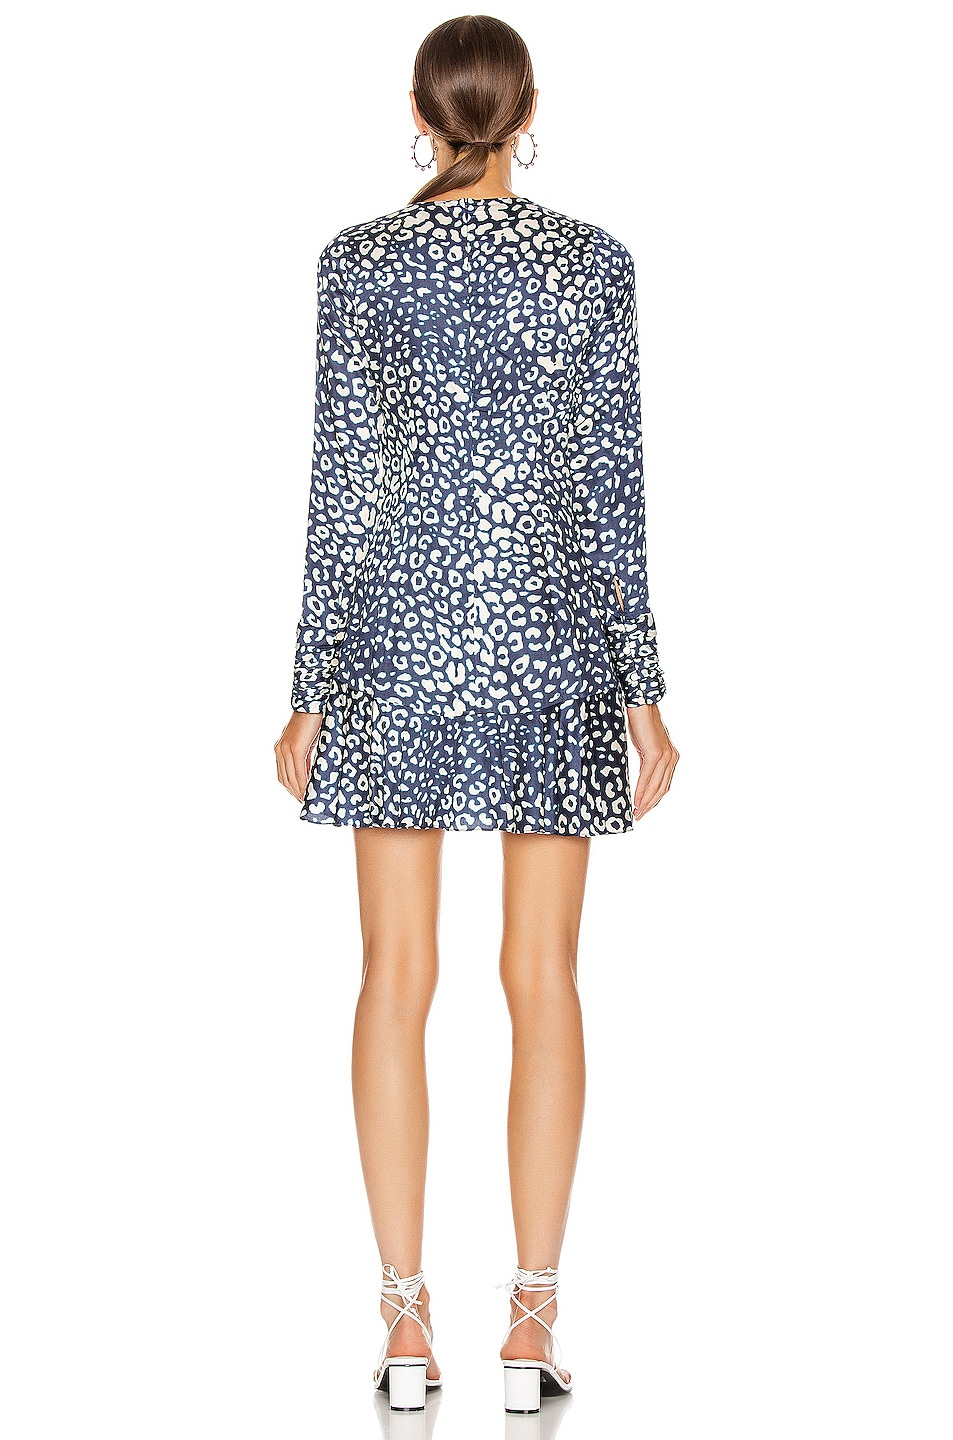 Image 3 of Alexis Madhu Dress in Marine Leopard